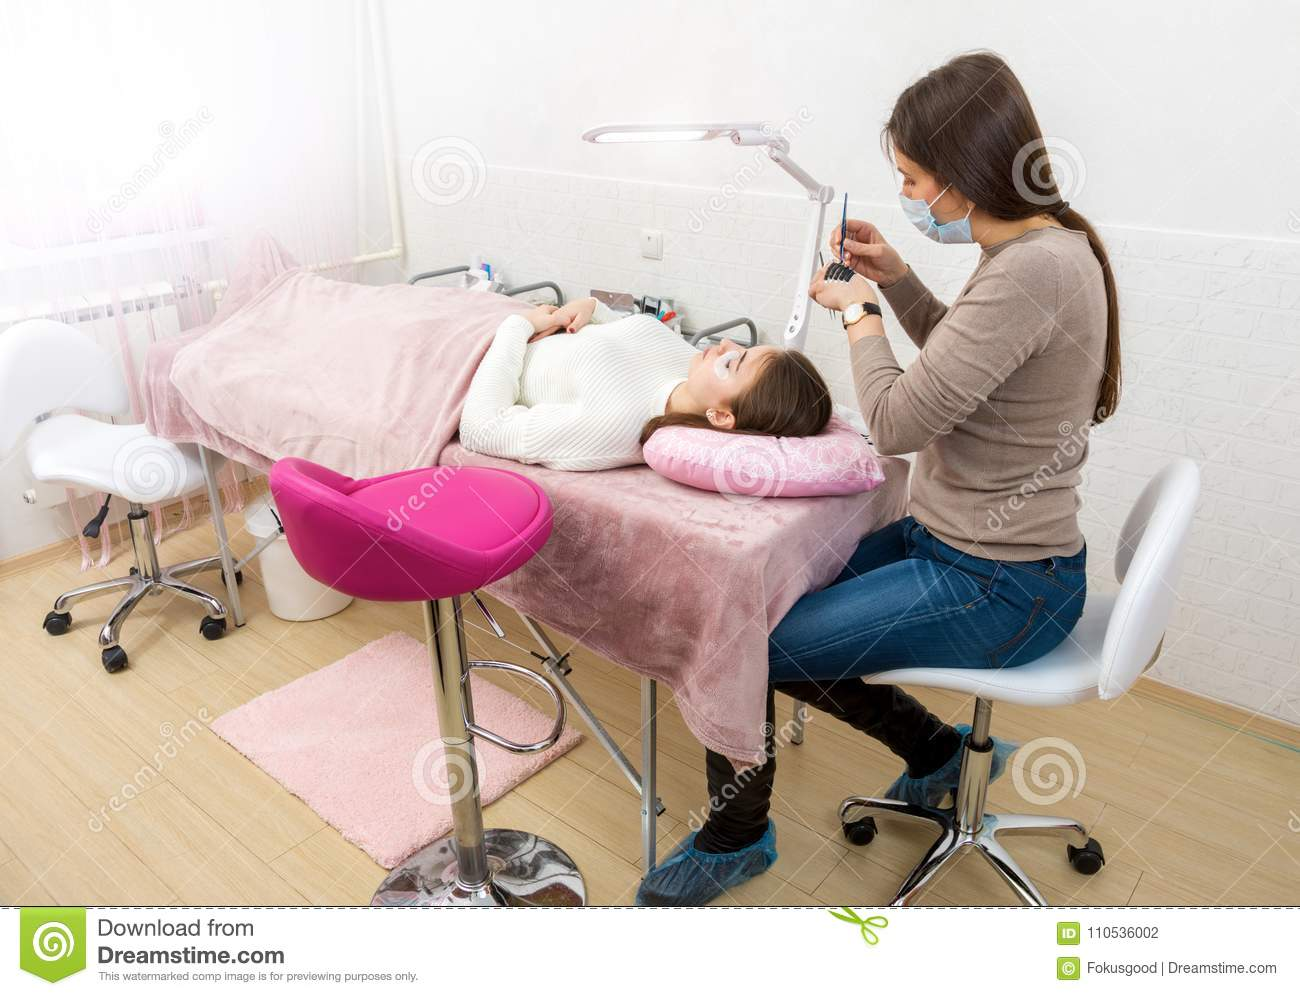 Process Of Eyelash Extension In The Beauty Salon Stock Photo Image Of Equipment Cotton 110536002